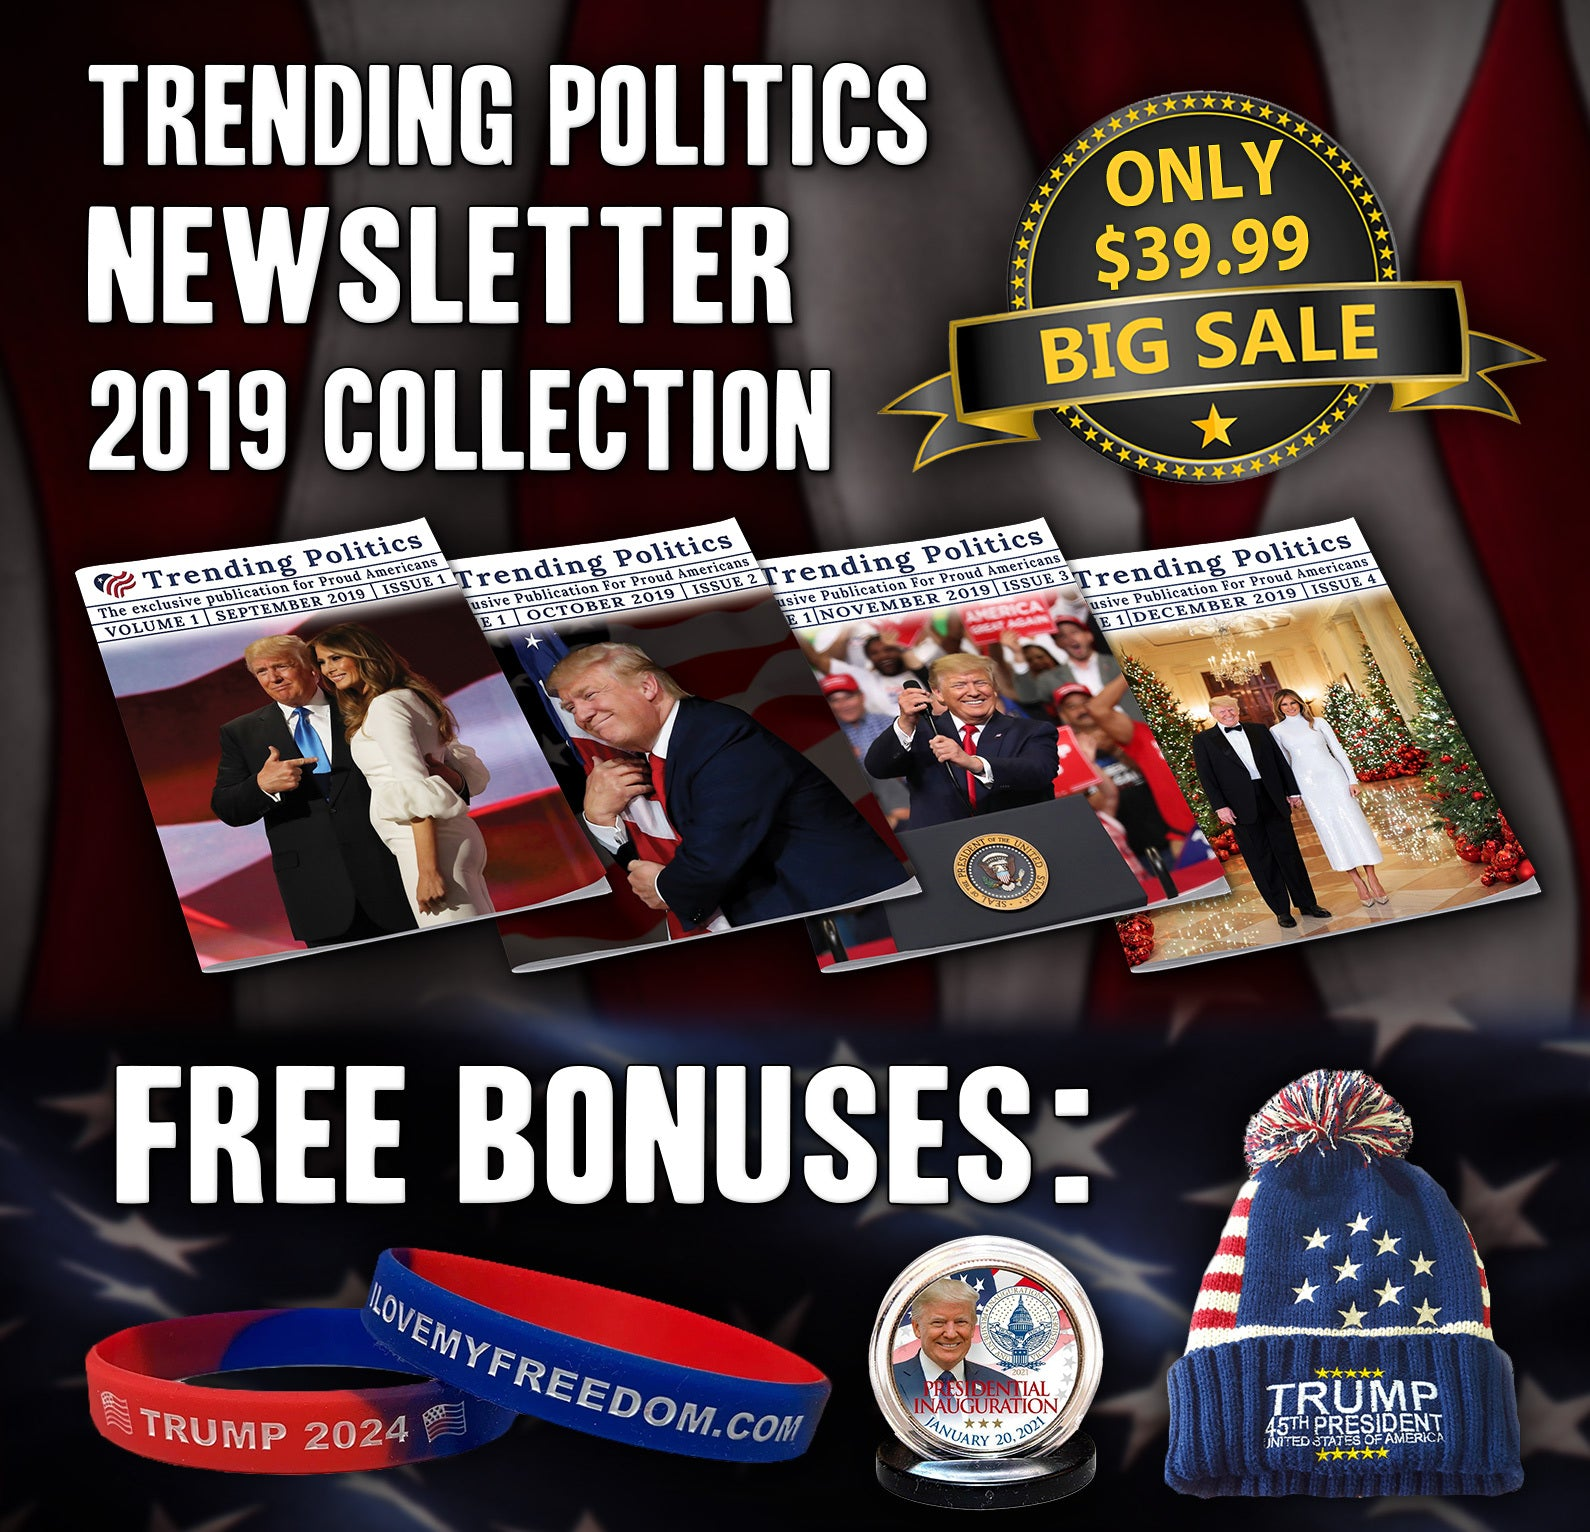 Trending Politics Newsletter 2019 Collection